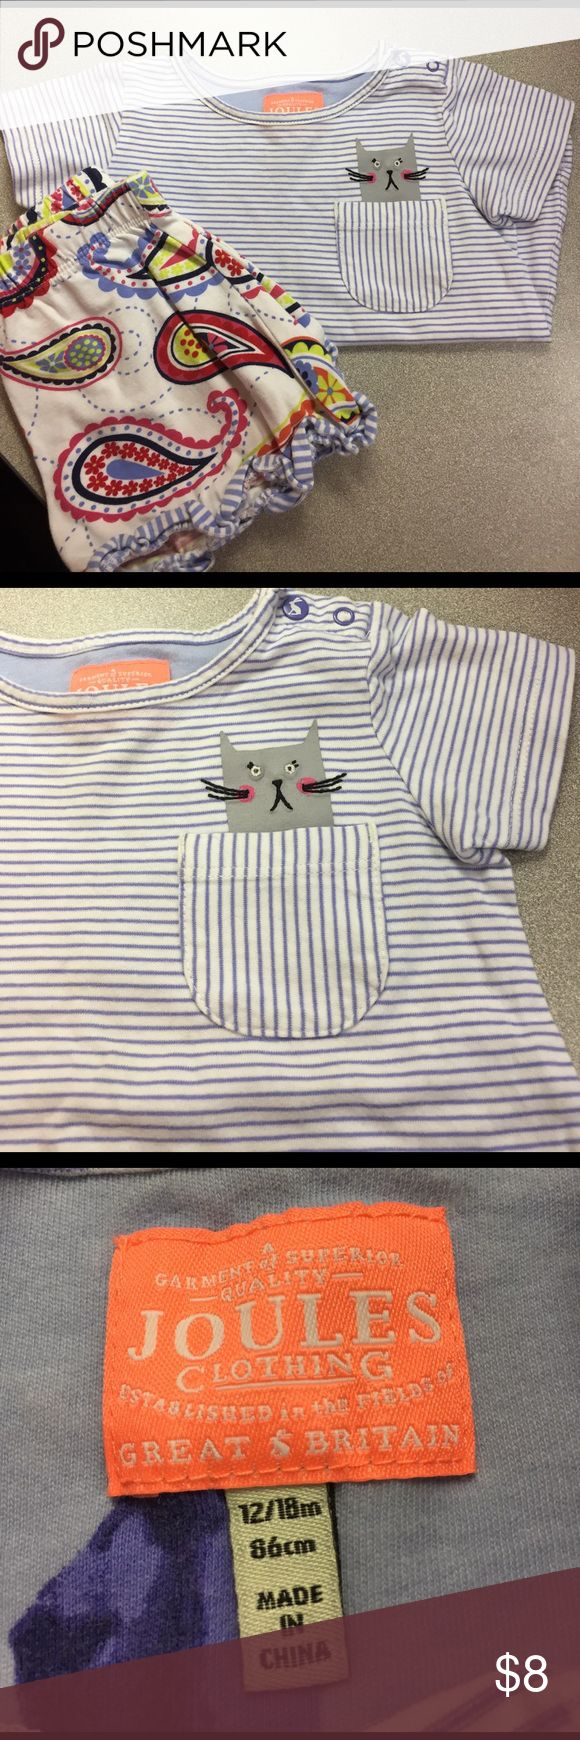 12-18 months Joules blue stripe Cats in your pocket! This has stains! Cute for play clothes. Joules Shirts & Tops Tees - Short Sleeve